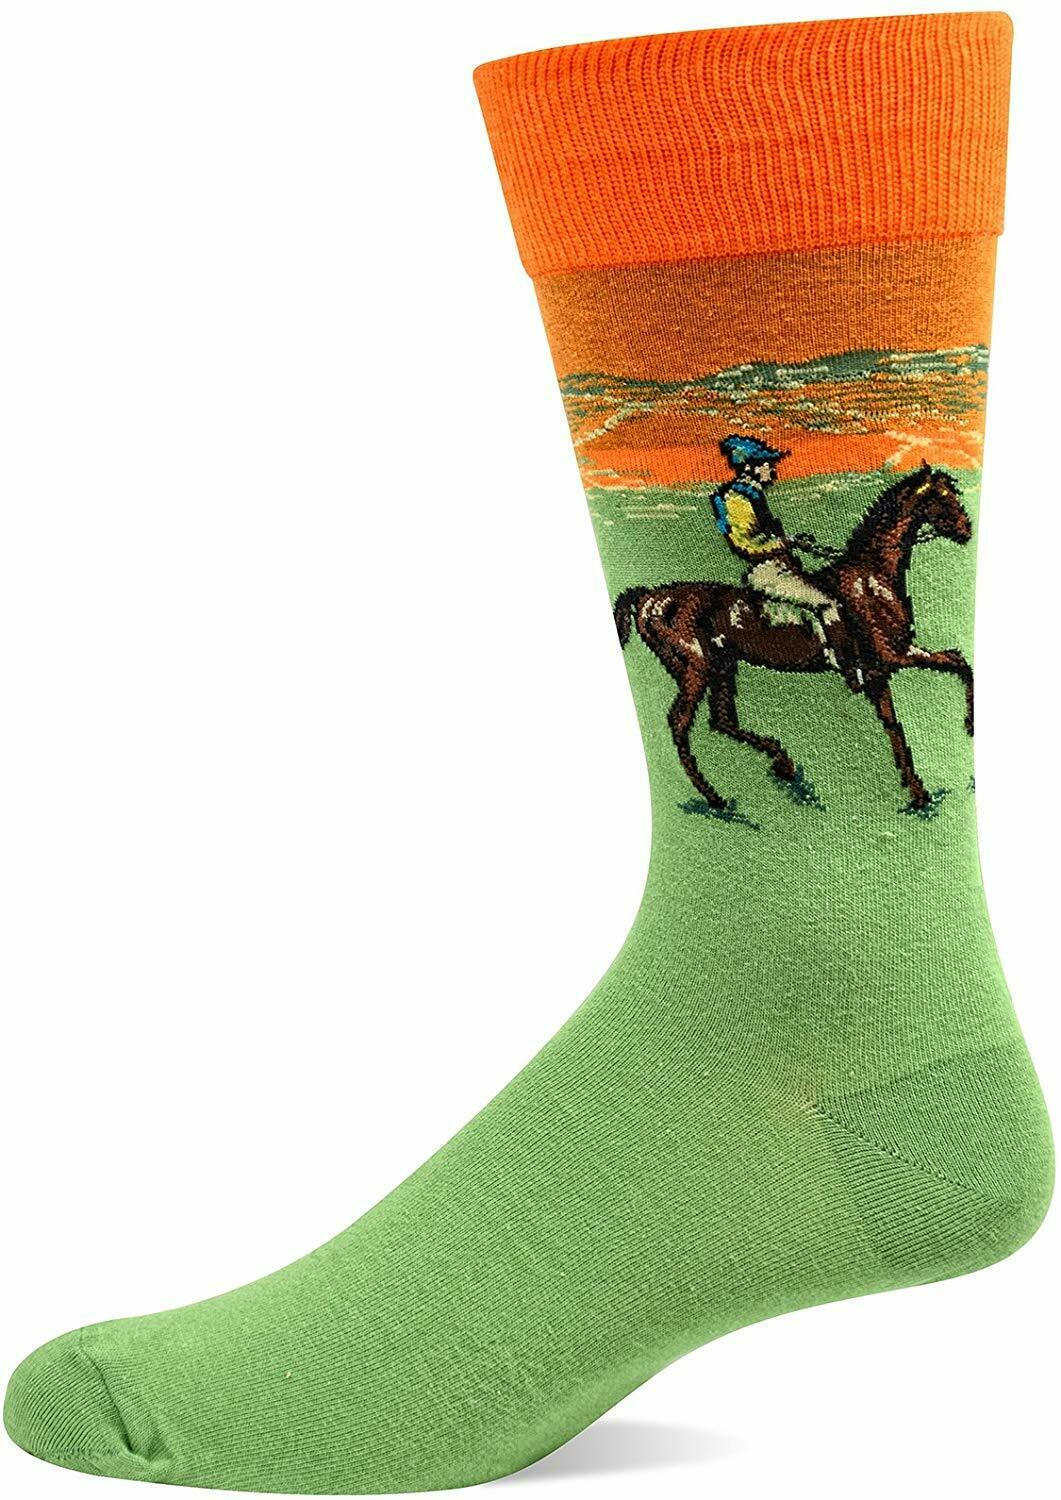 Edward Degas Race Horses Socks Famous Art Drawing Unisex Jockey Rider Men Women